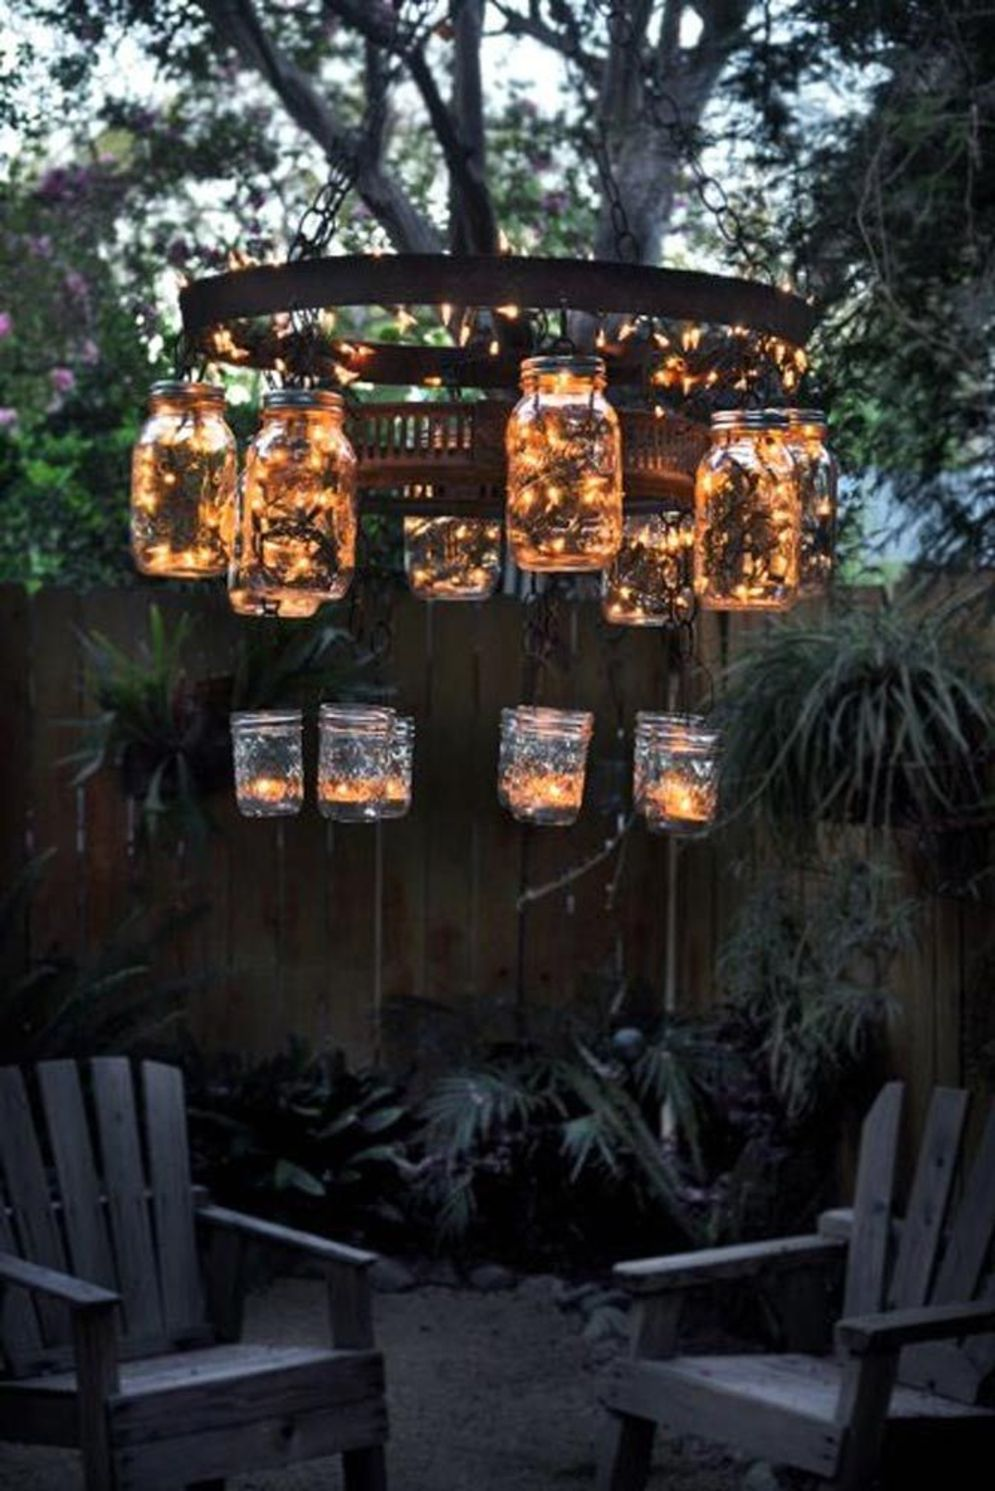 Lavish garden upgrade showing beautiful outdoor light schemes that liven up the landscape view Image 37